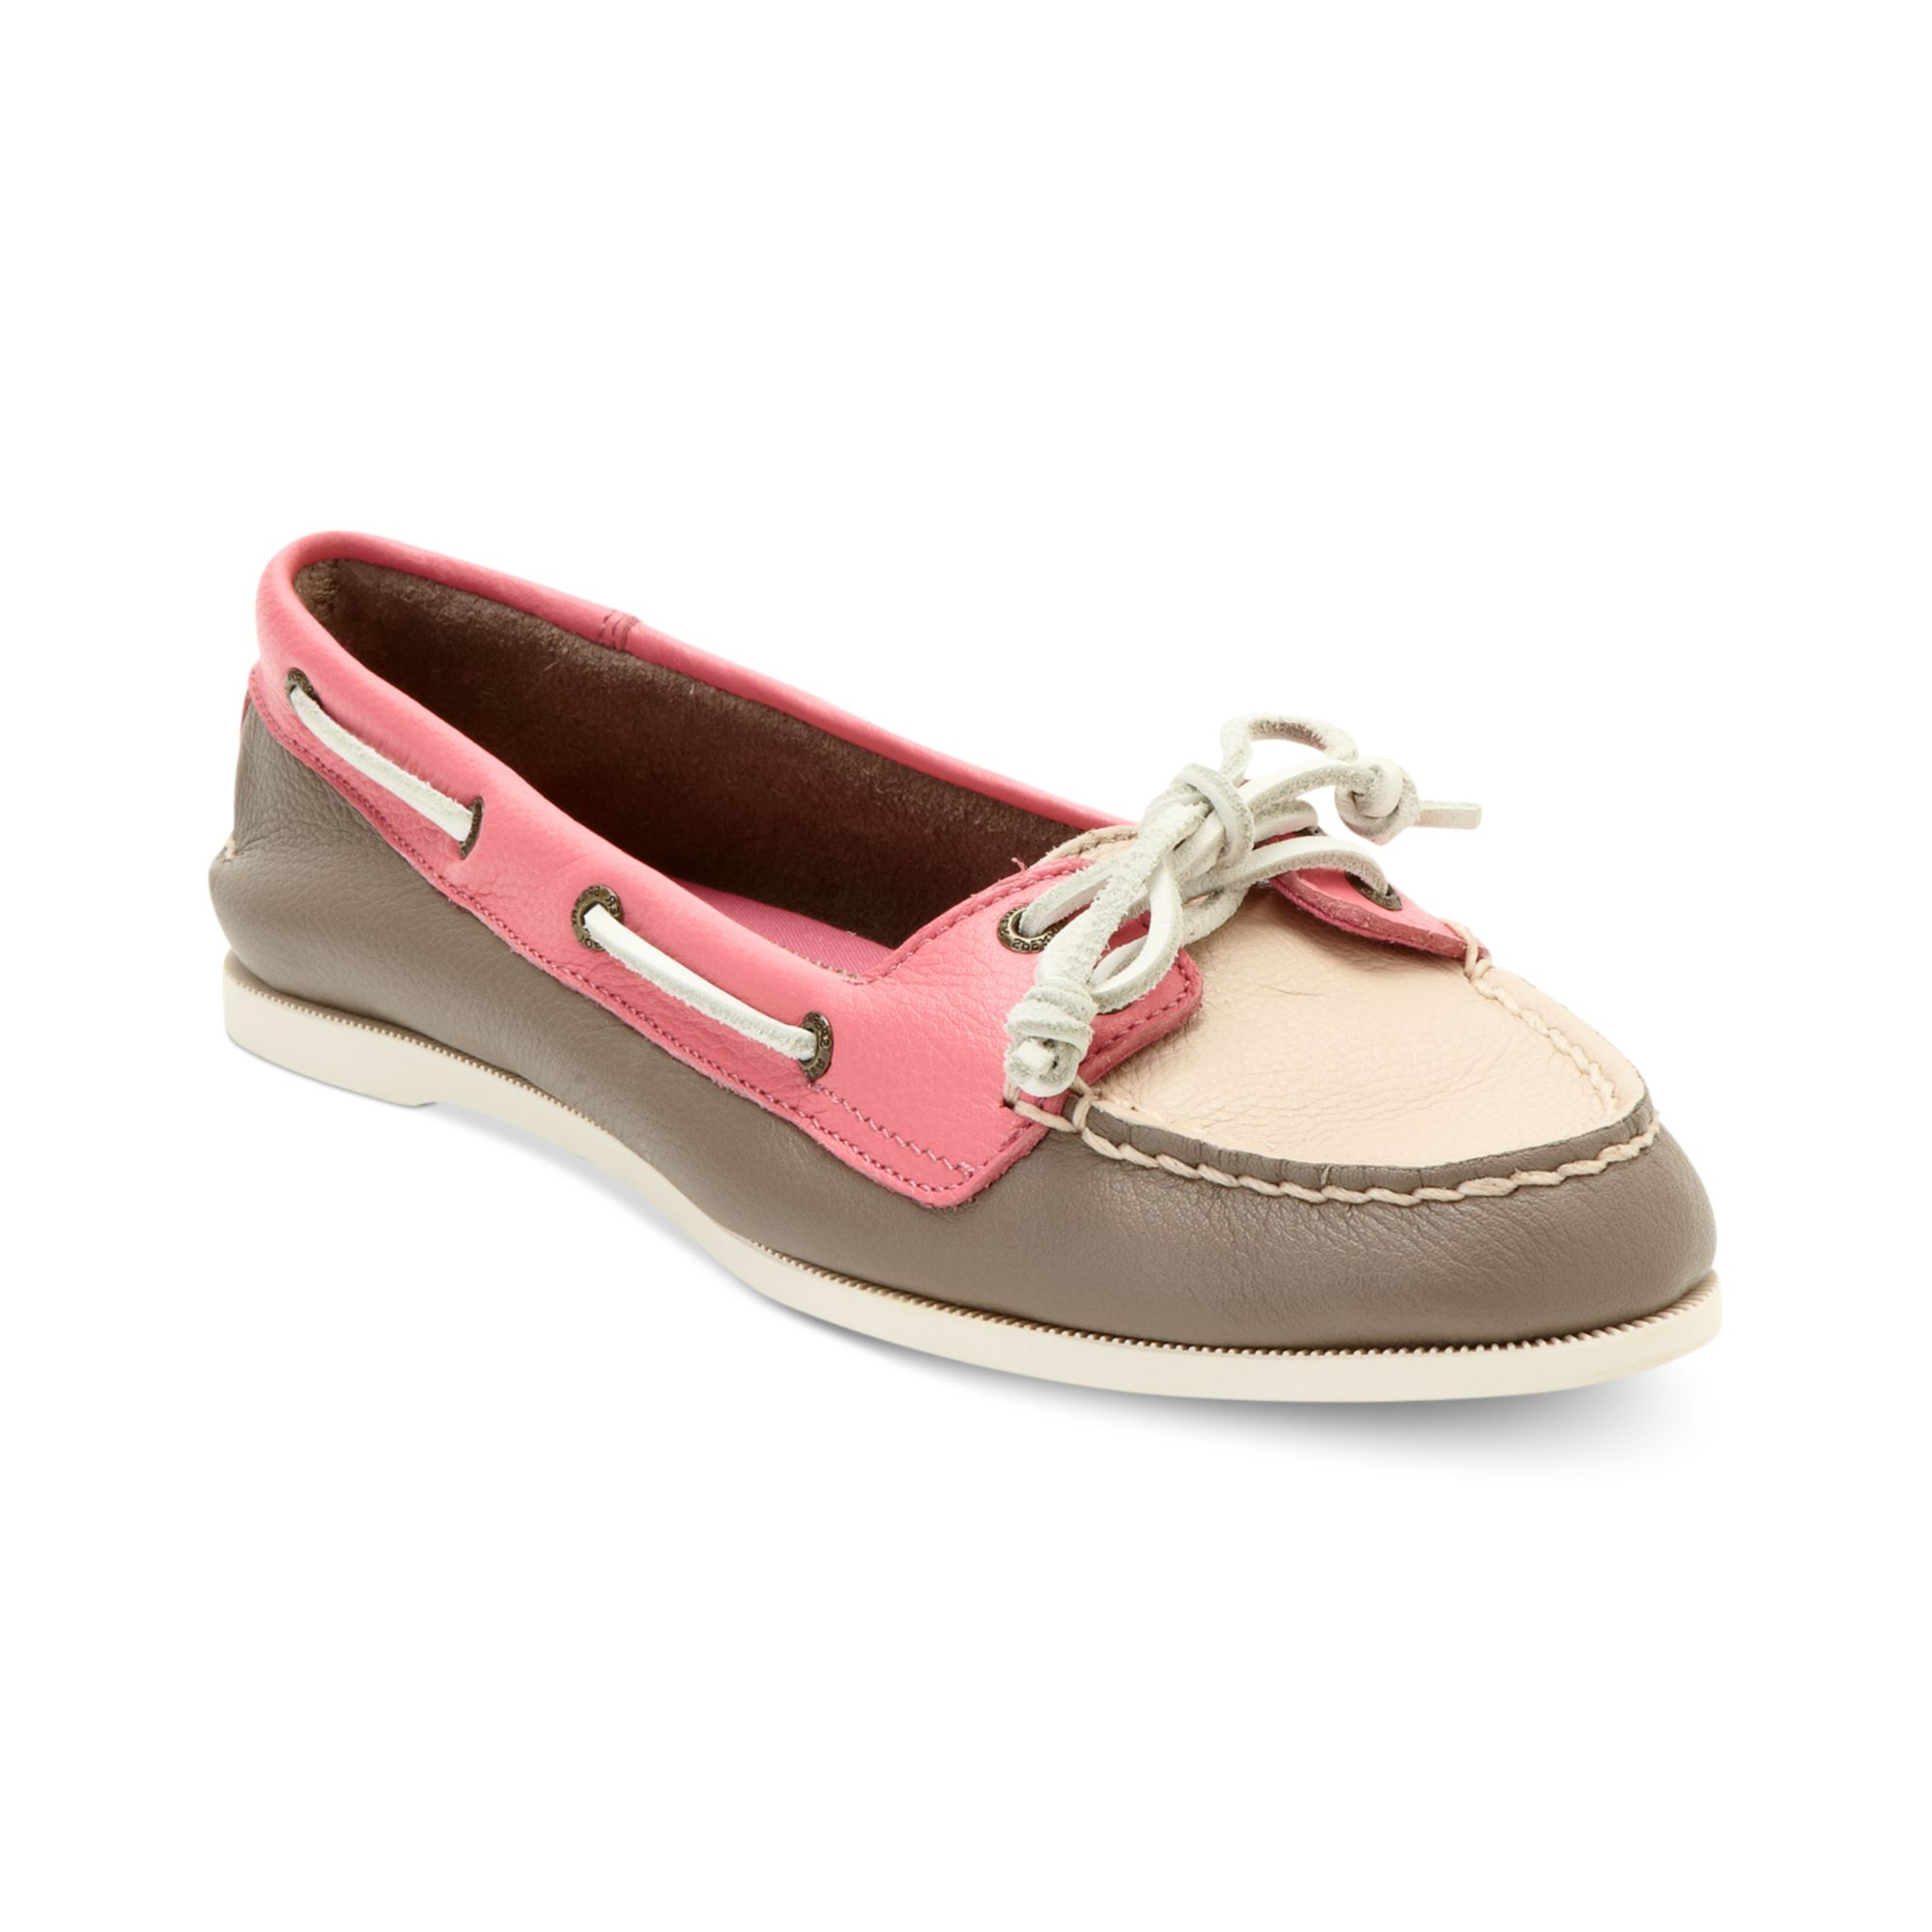 sperry top sider boat shoes in pink for griege